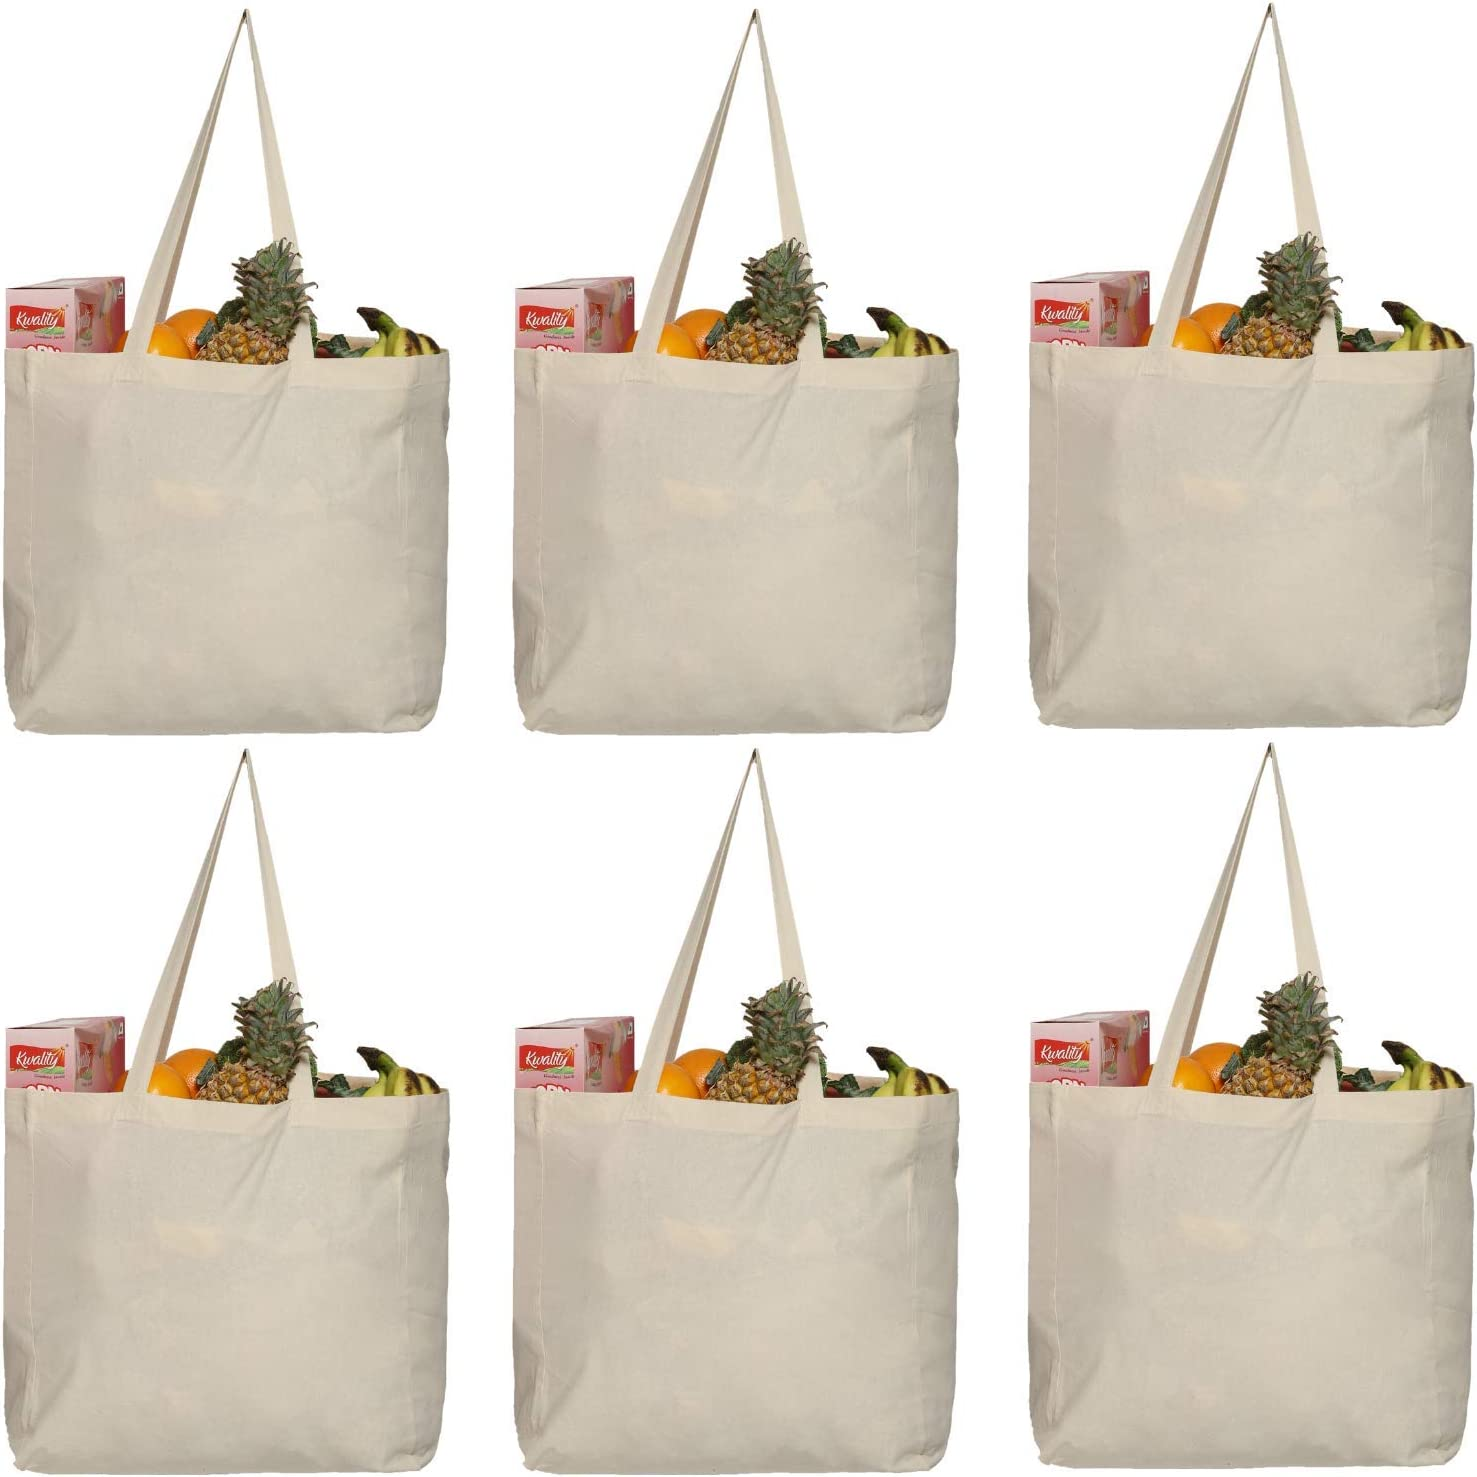 "Greenmile 6 Pack Reusable Grocery Bags with Extra Strong Handles | Holds 40 lbs | Large Eco Cotton Canvas Shopping Totes | Heavy Duty, Eco Friendly, Foldable Bulk Market Bag (14x14x7.5"") Pack of 6"